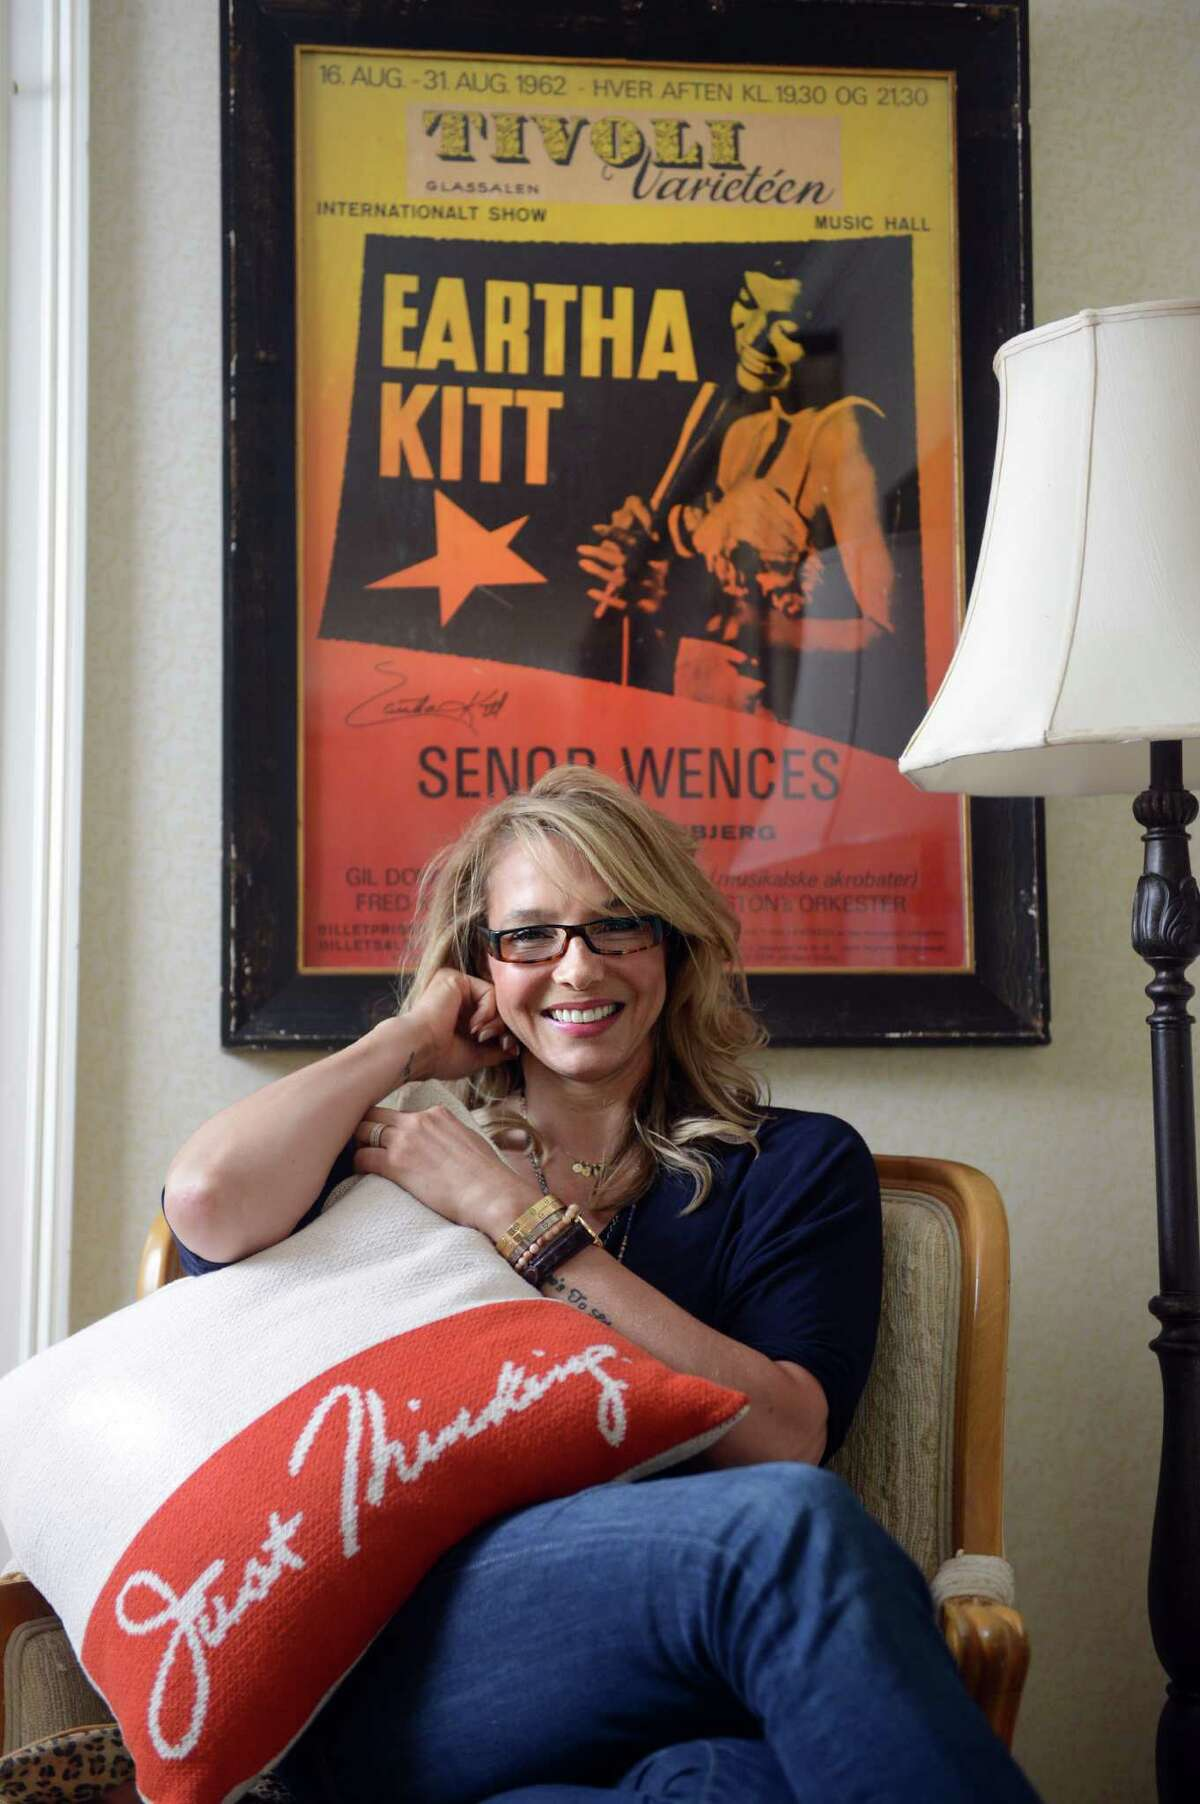 Kitt Shapiro, daughter of entertainer Eartha Kitt, has launched a line of eco-friendly home products, called Simply Eartha, which feature quotes from her mother.